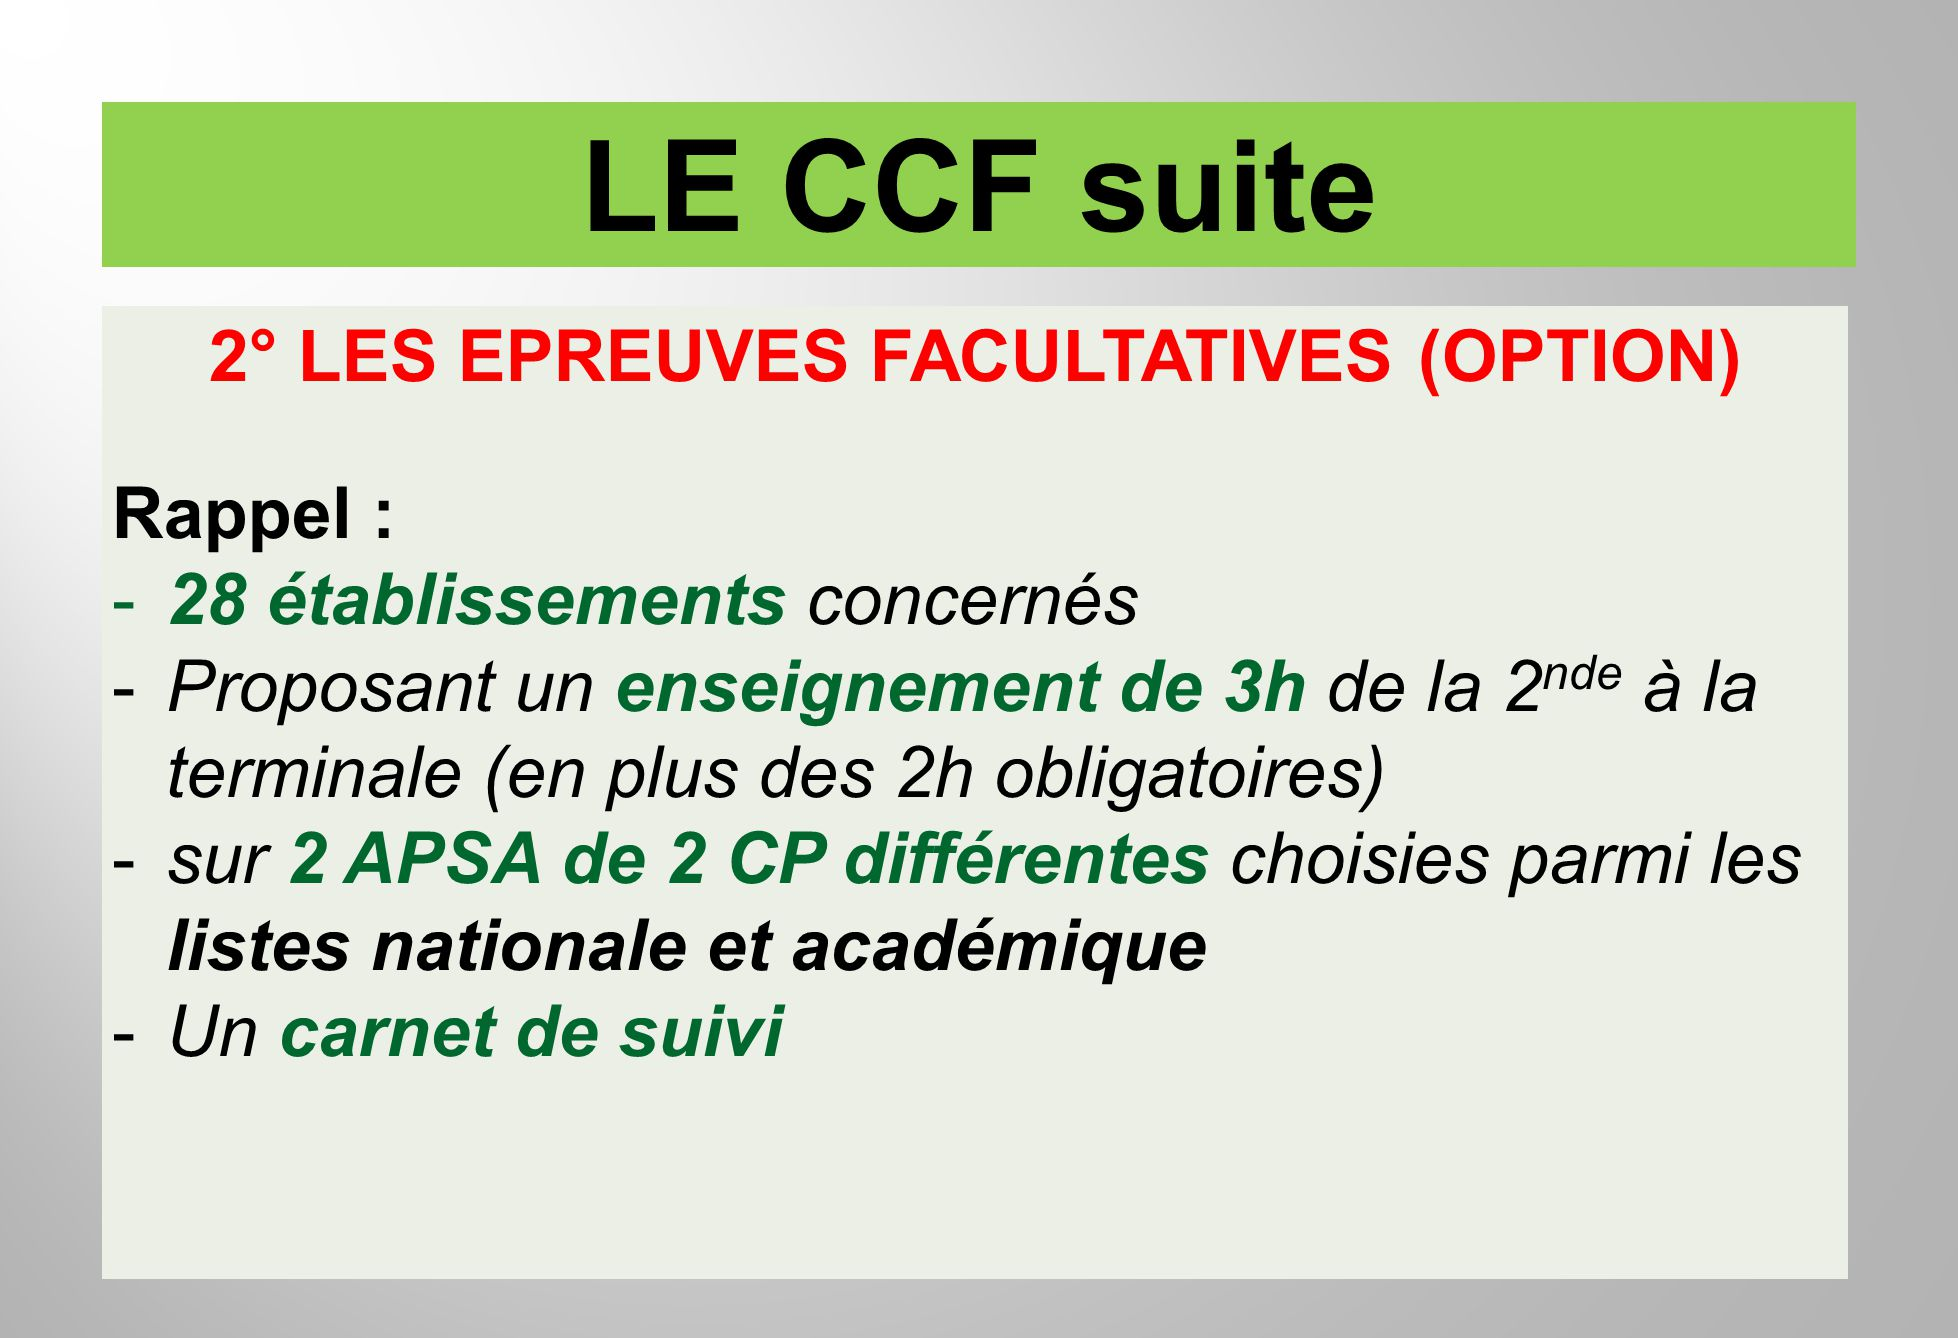 2° LES EPREUVES FACULTATIVES (OPTION)